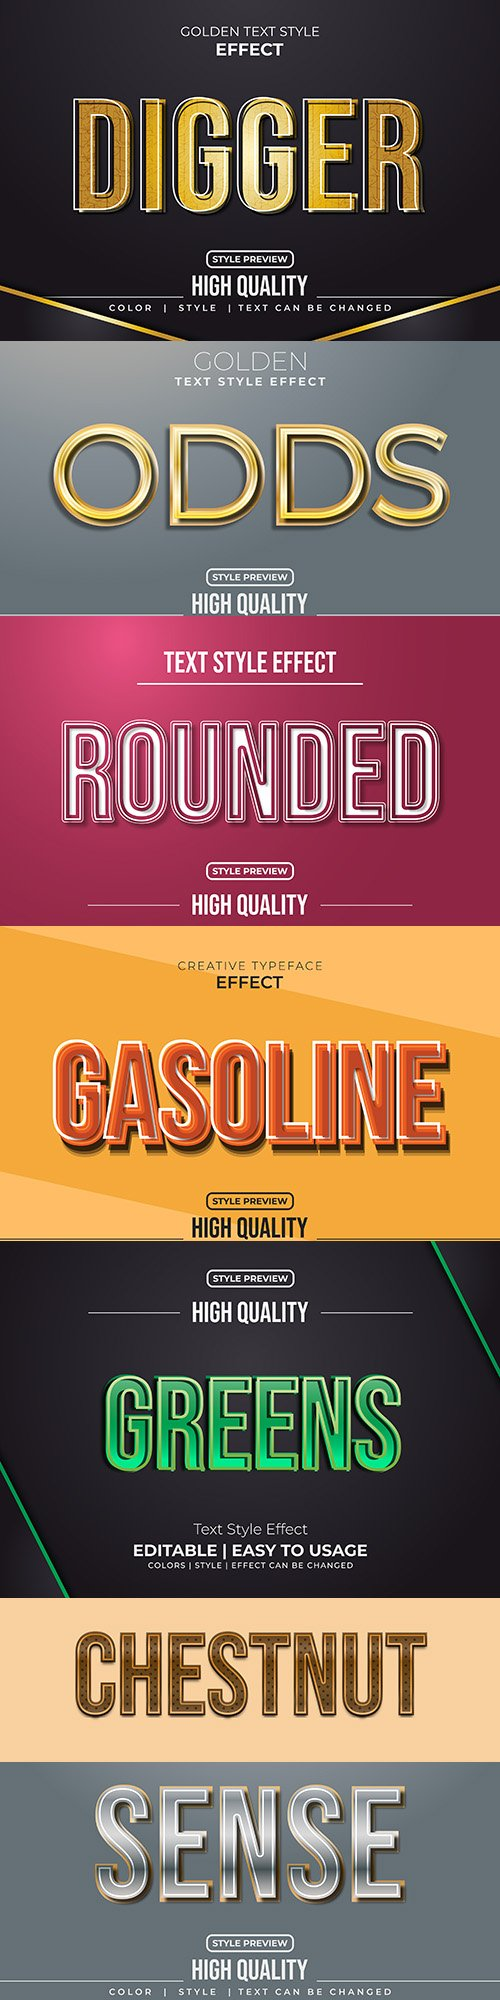 Editable font effect text collection illustration 24